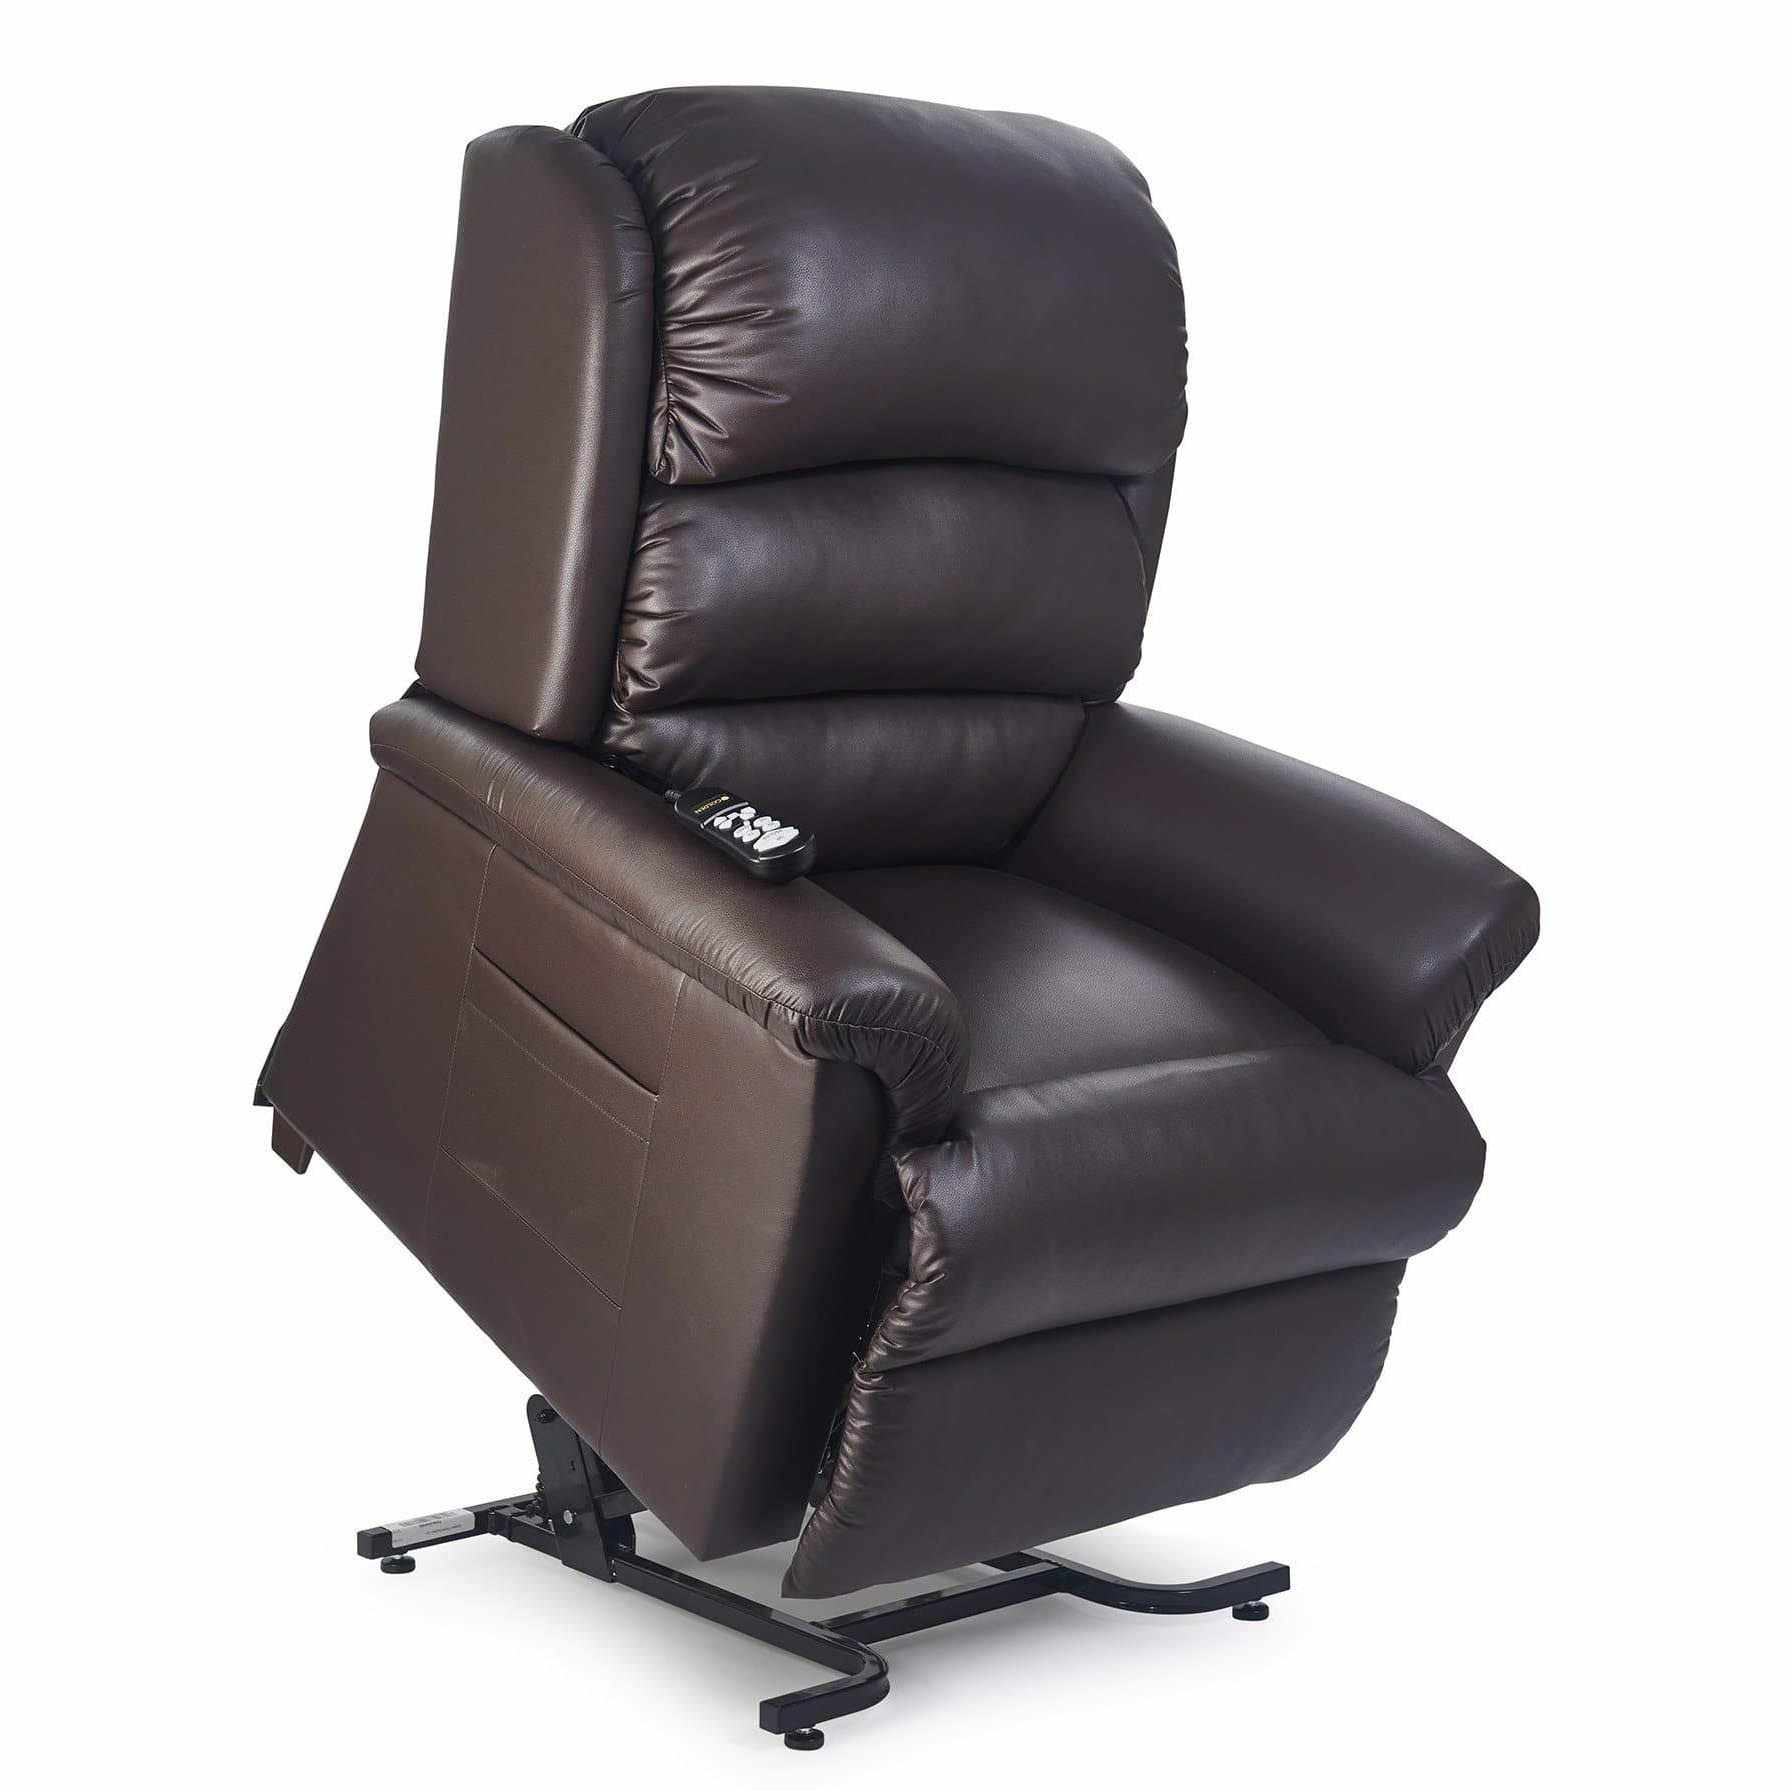 Golden Technologies Relaxer PR-766 zero gravity lift chair with maxicomfort